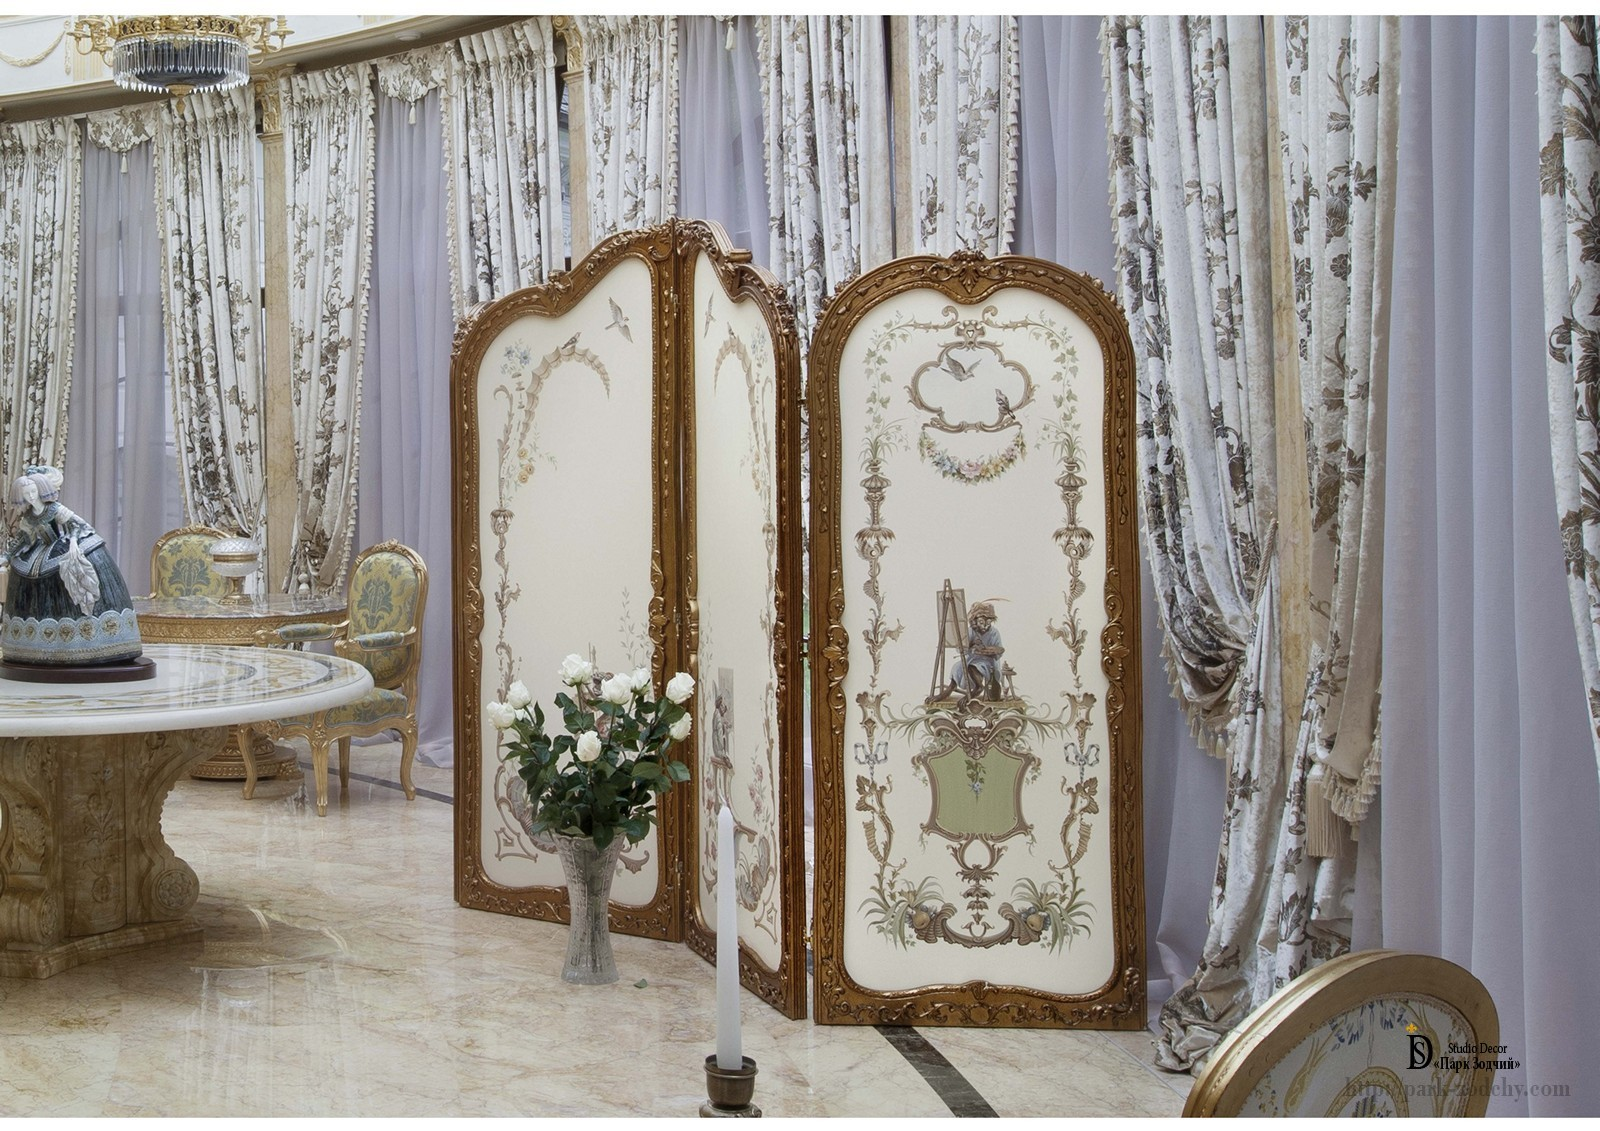 Painted screens in the style of chinoiserie